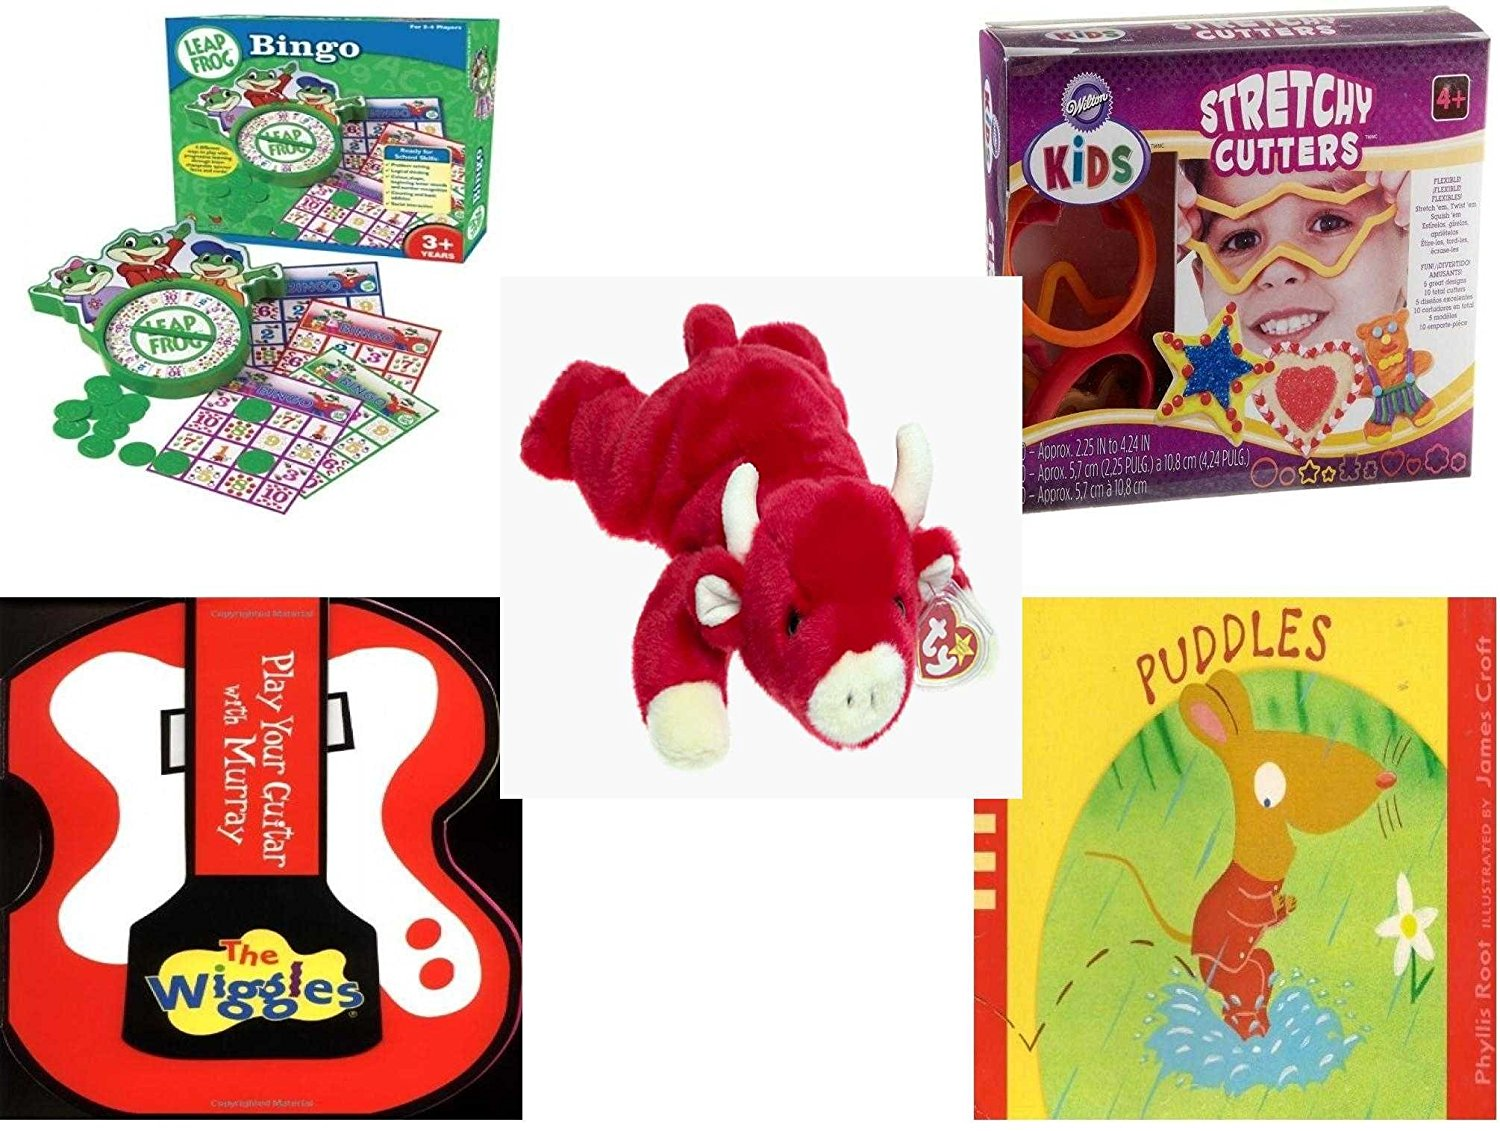 Children's Gift Bundle - Ages 3-5 [5 Piece] - Leap Frog Bingo Game - Wilton Kids Stretchy Silicone Cookie Cutter Set, 10-Piece - TY Beanie Baby - Snort the Bull - The Wiggles Play Your Guitar with M